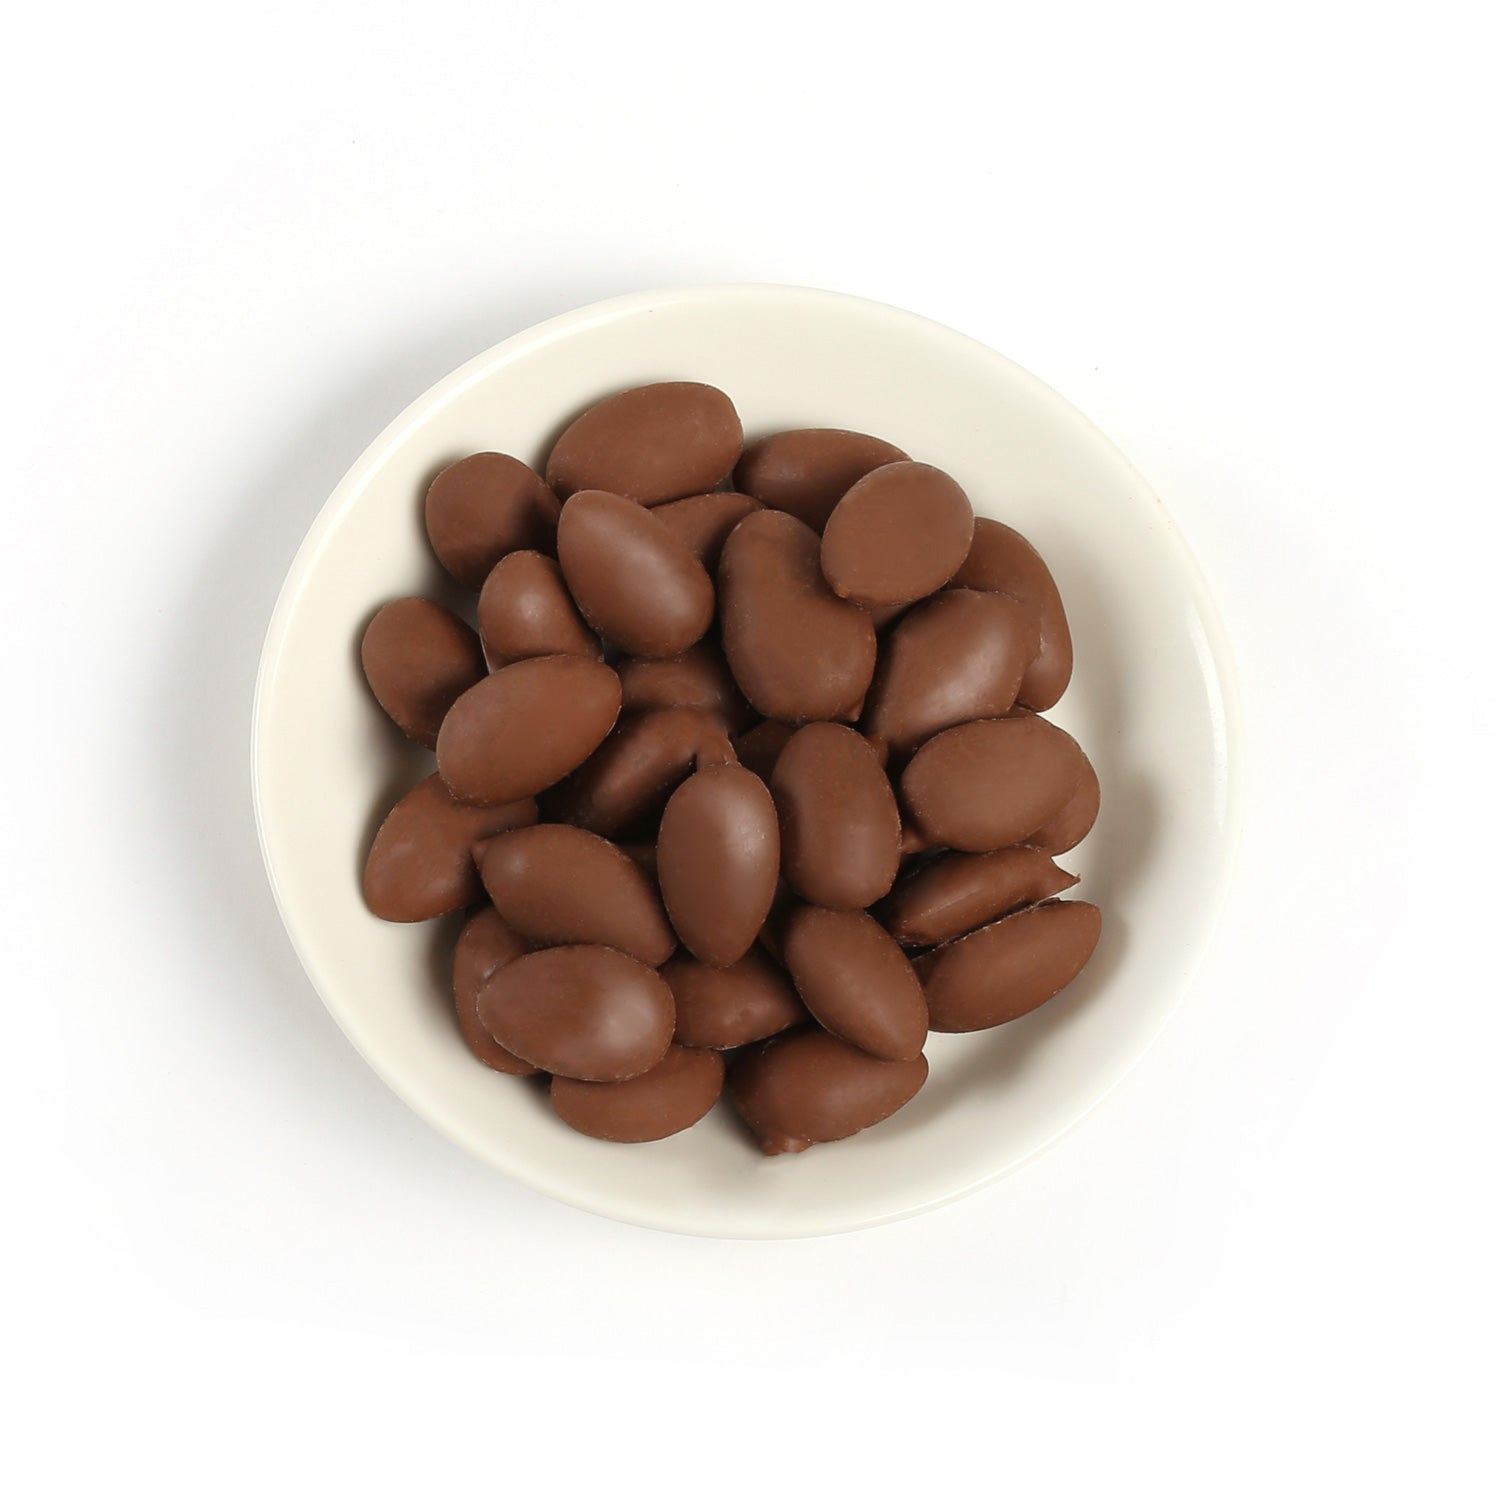 Product photo of milk chocolate covered almonds